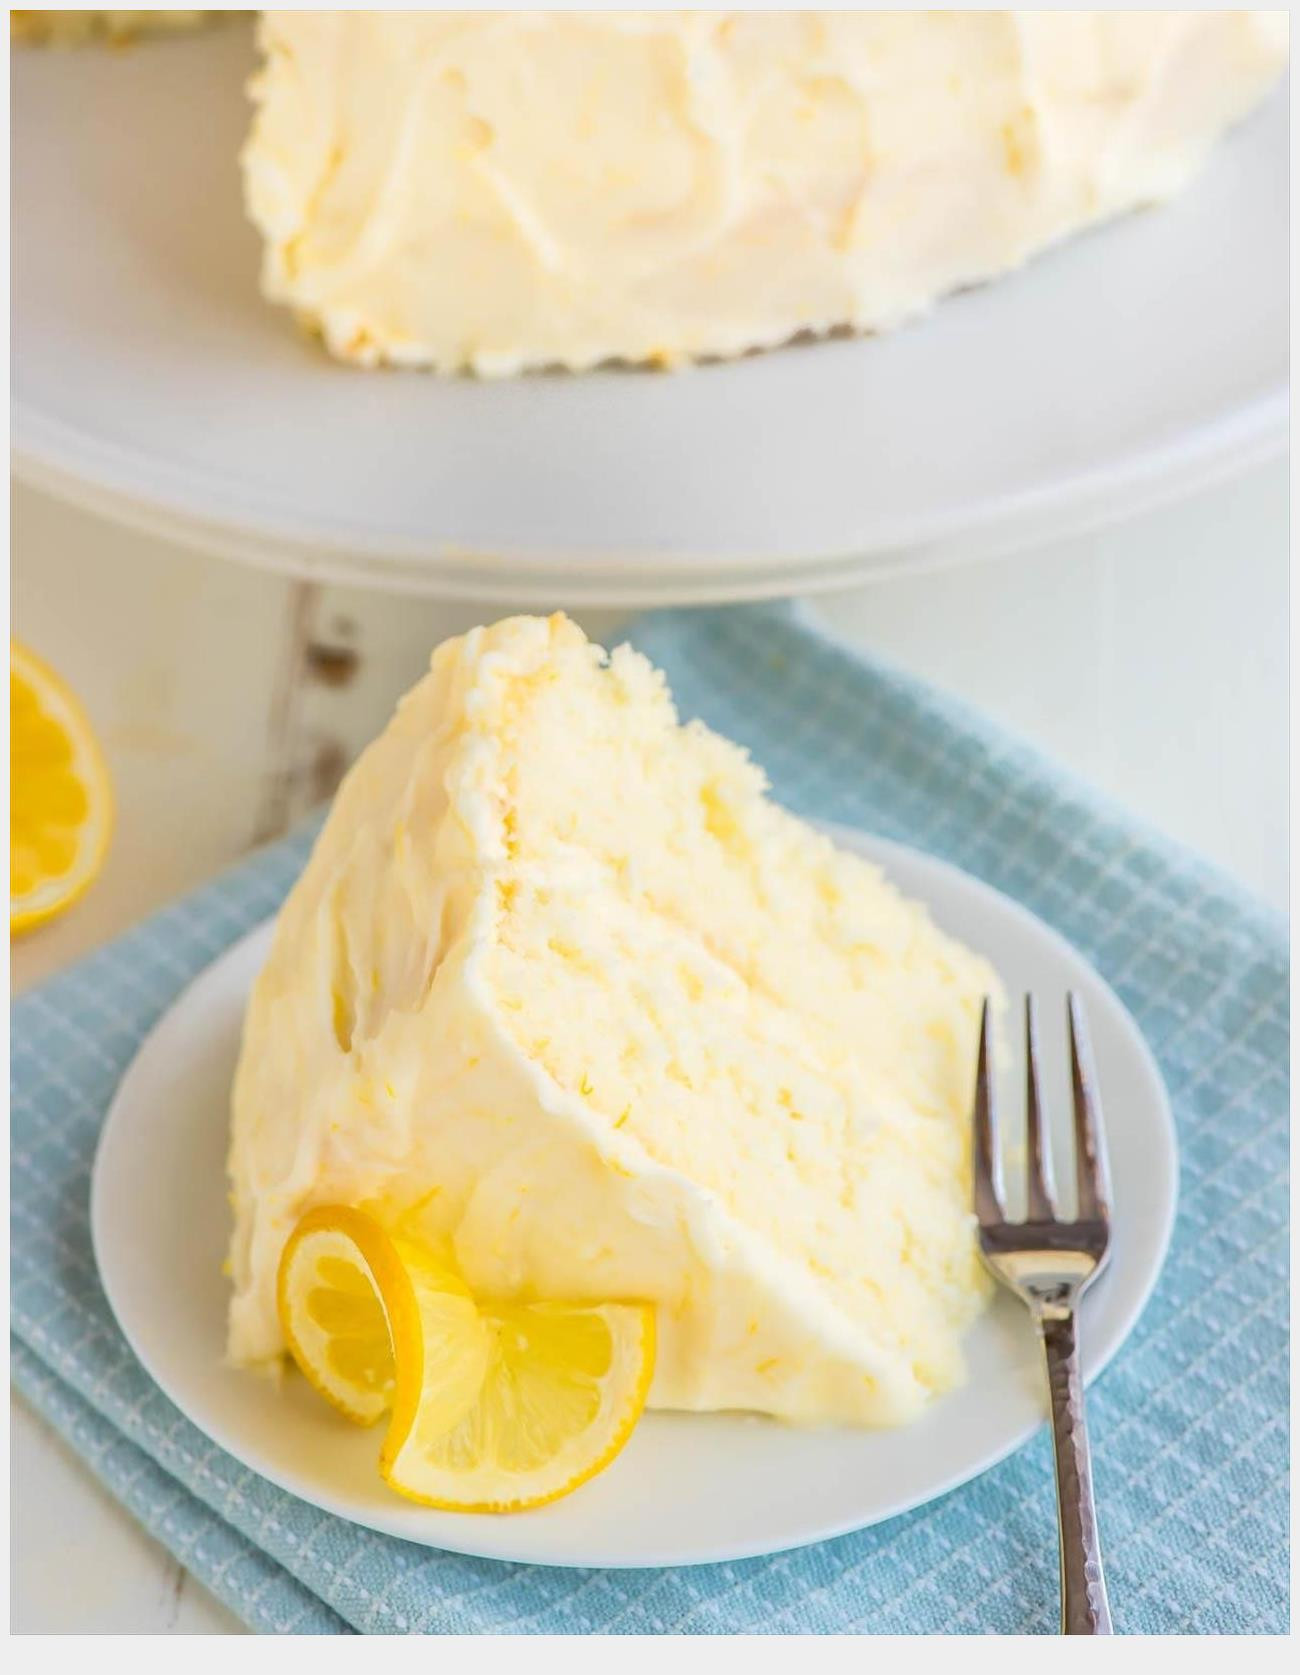 Lemon Cake From Scratch  Good lemon cake from scratch picture 47 ⋆ Cakes for